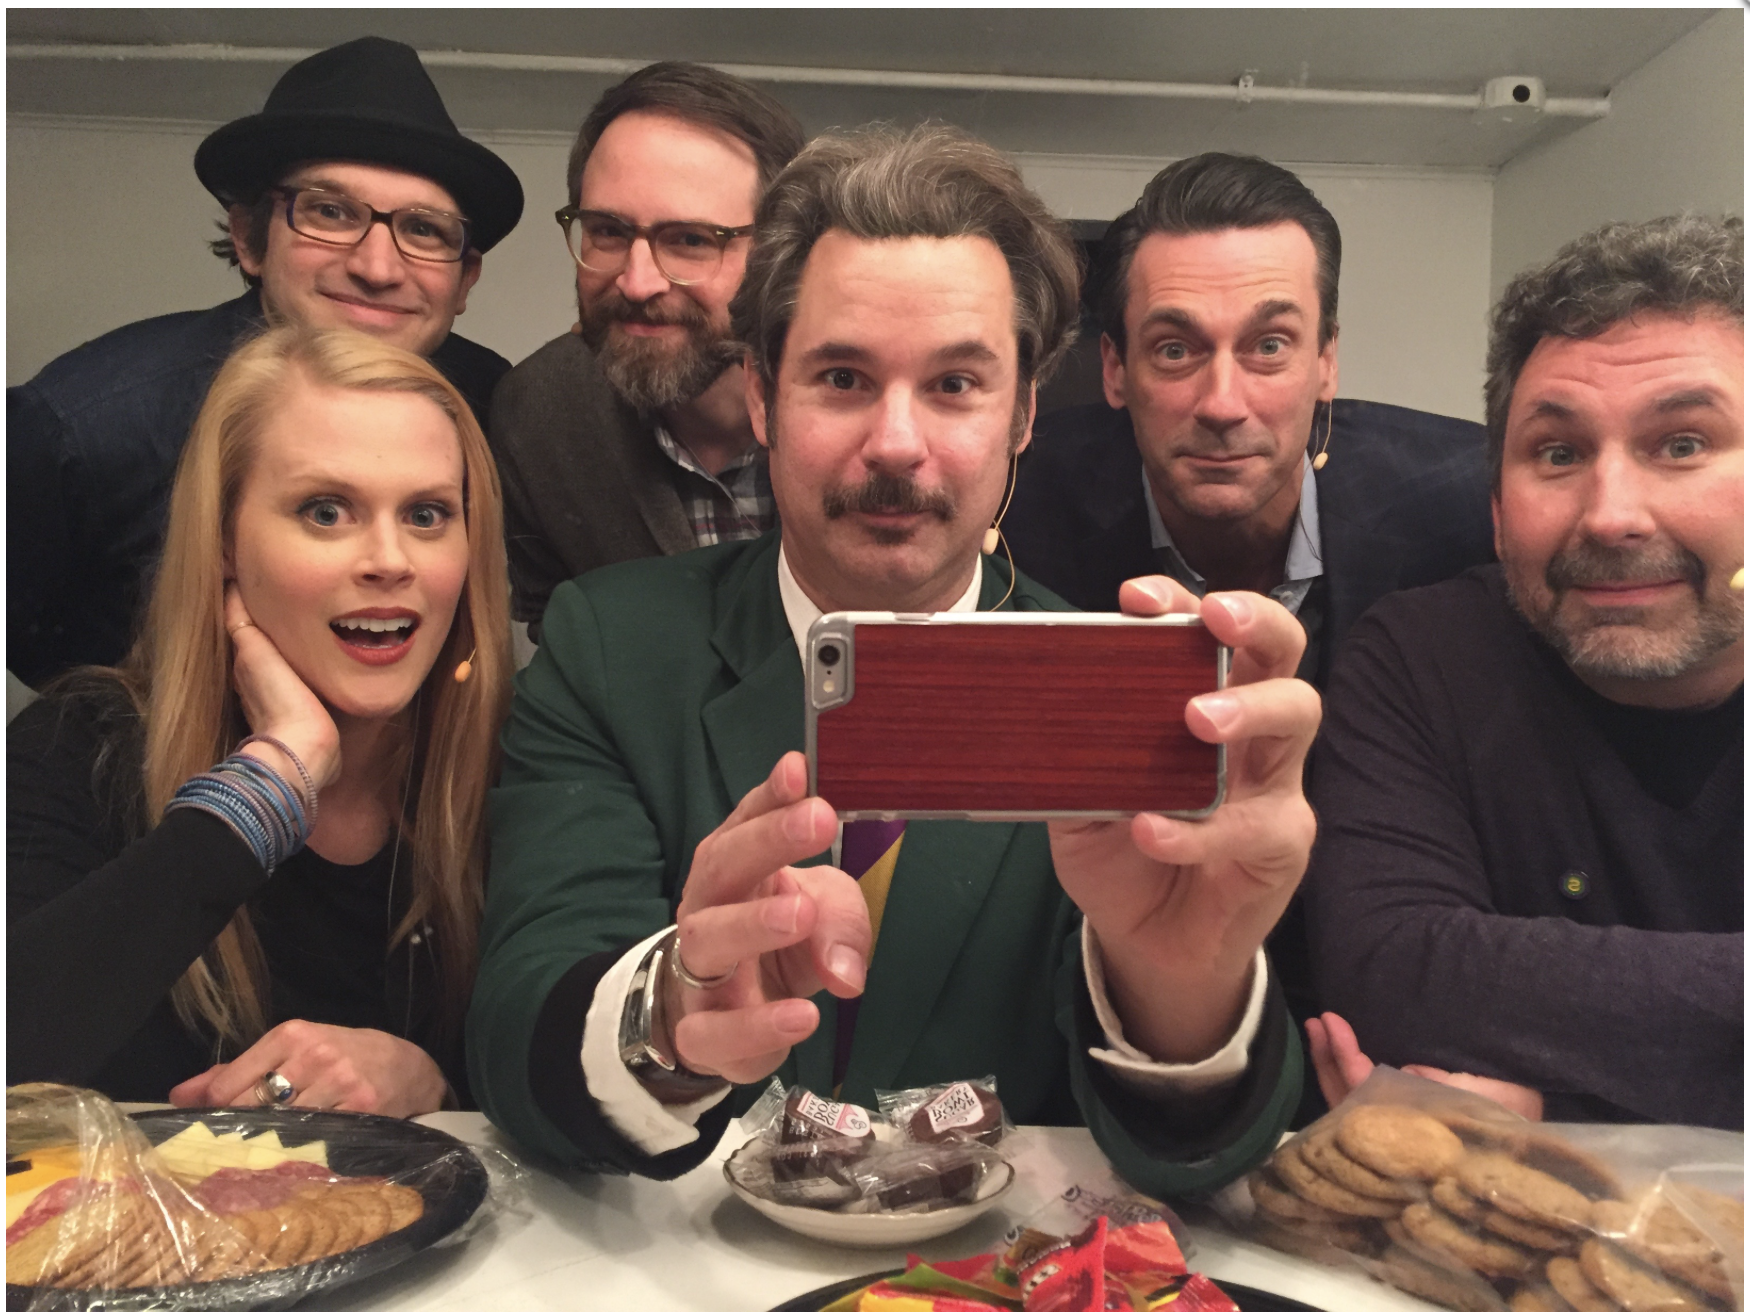 Spontaneanation with Paul F. Tompkins#60 Storm Drain Live from SF Sketchfest(May 16th, 2016) - Paul F. Tompkins welcomes ladies or gentlemen to a LIVE episode of Spontaneanation, recorded at San Francisco SketchFest 2016! This week, Paul's special guest Jon Hamm of Mad Men! They chat about what book inspired Jon as a child, questionable babysitting tactics, and being pro- or anti-possum. Paul is then joined by Craig Cackowski, Matt Gourley, and Little Janet Varney to improvise a story set in a Storm Drain. And as always, Eban (only the best) Schletter scores it all on piano!